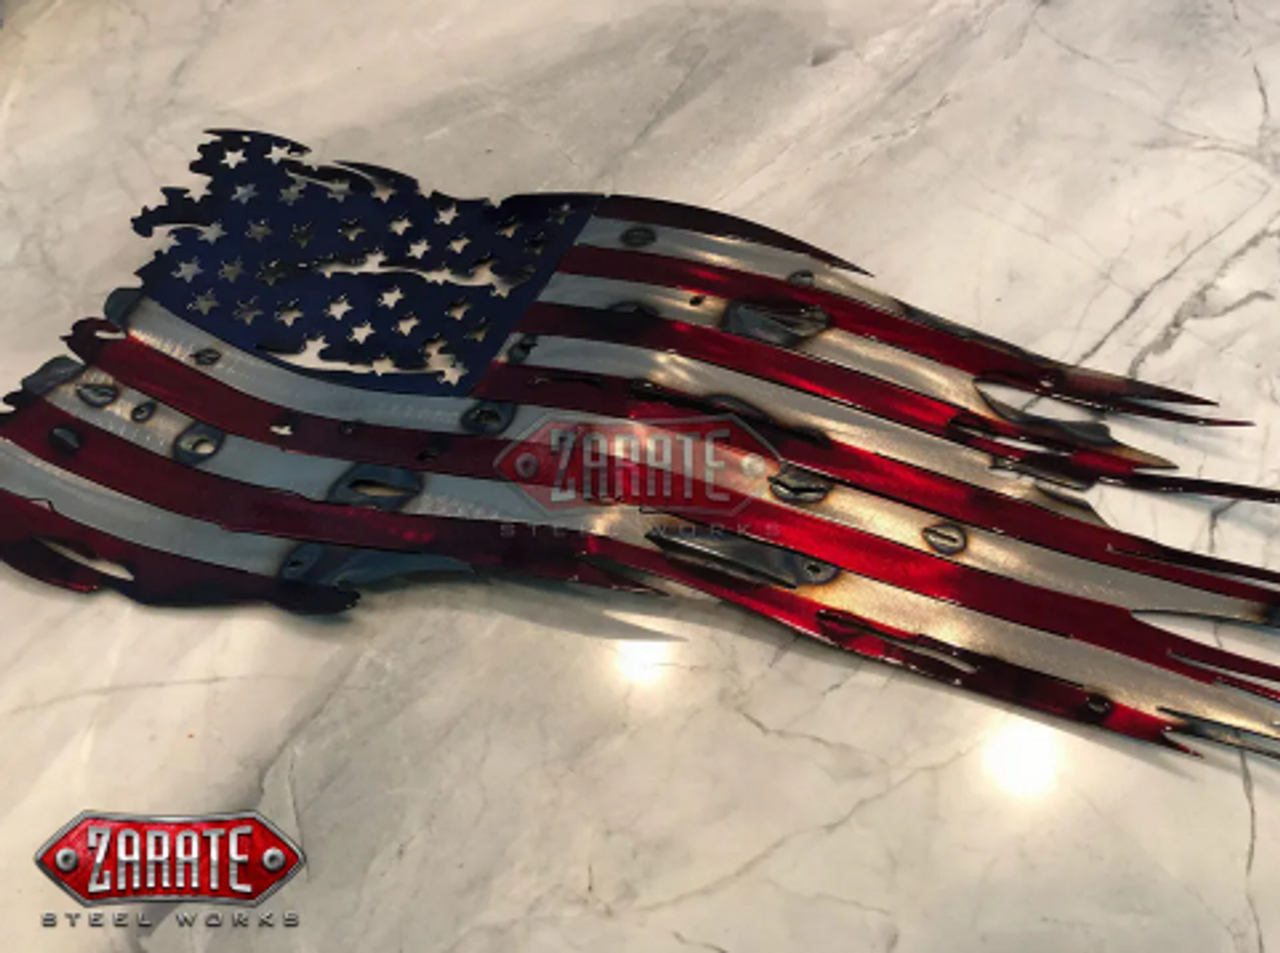 American Tattered Flag (LGA-9020) - Zarate Steel Works (Each steel piece detail effects may vary as they are handcrafted individually.)